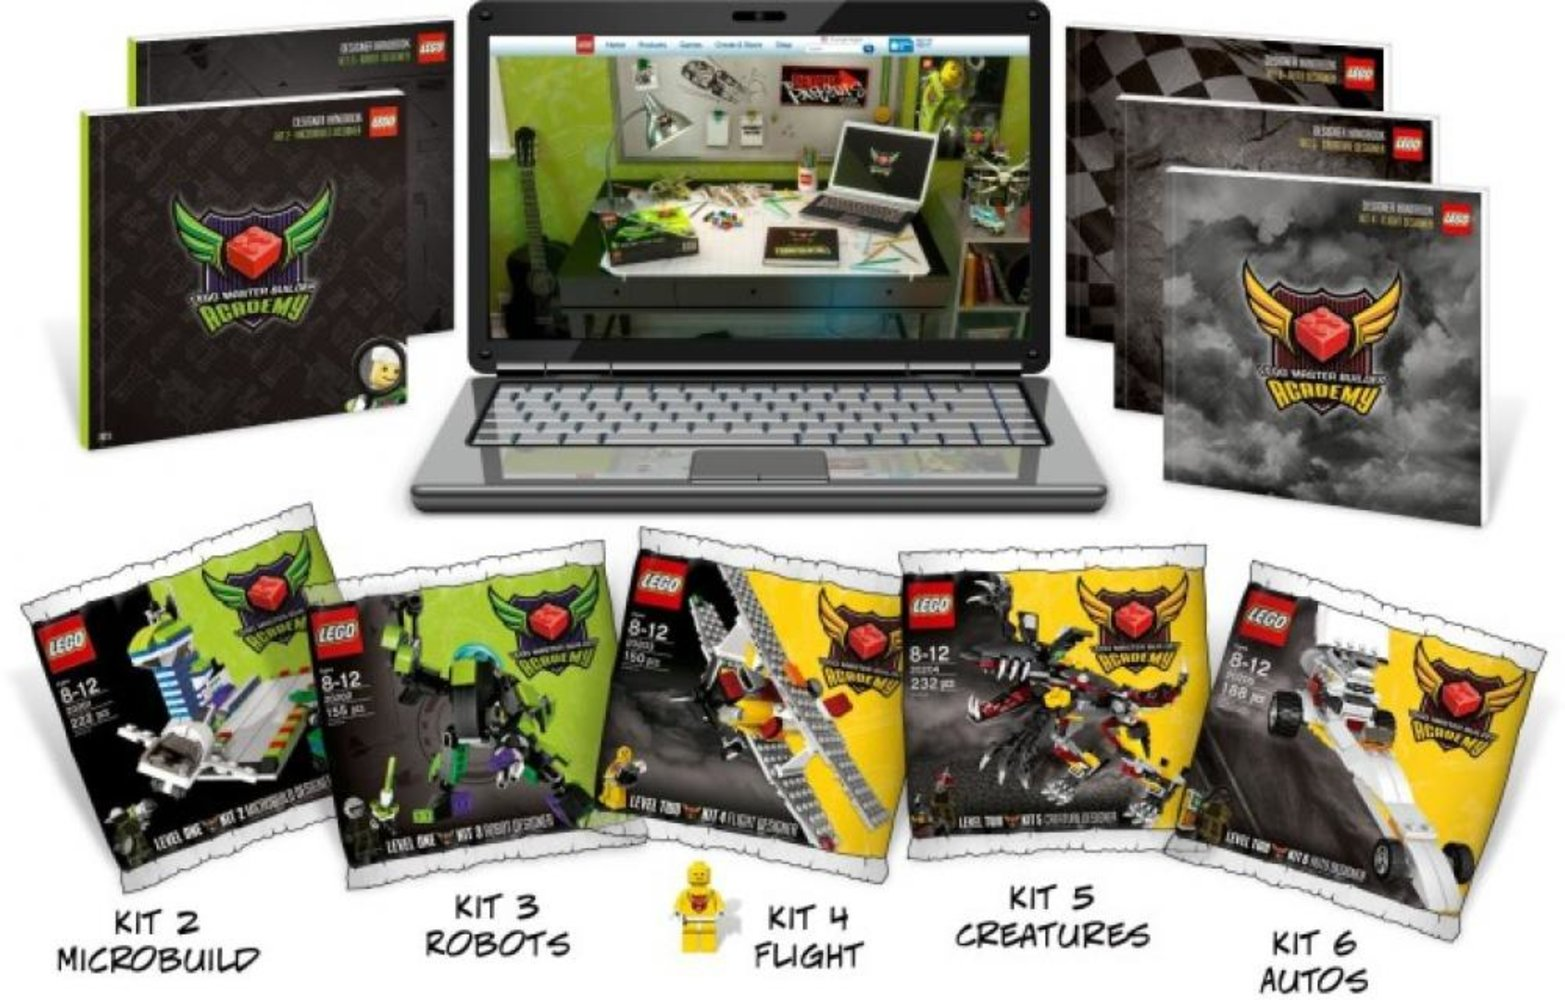 Master Builder Academy: Kits 2-6 Subscription